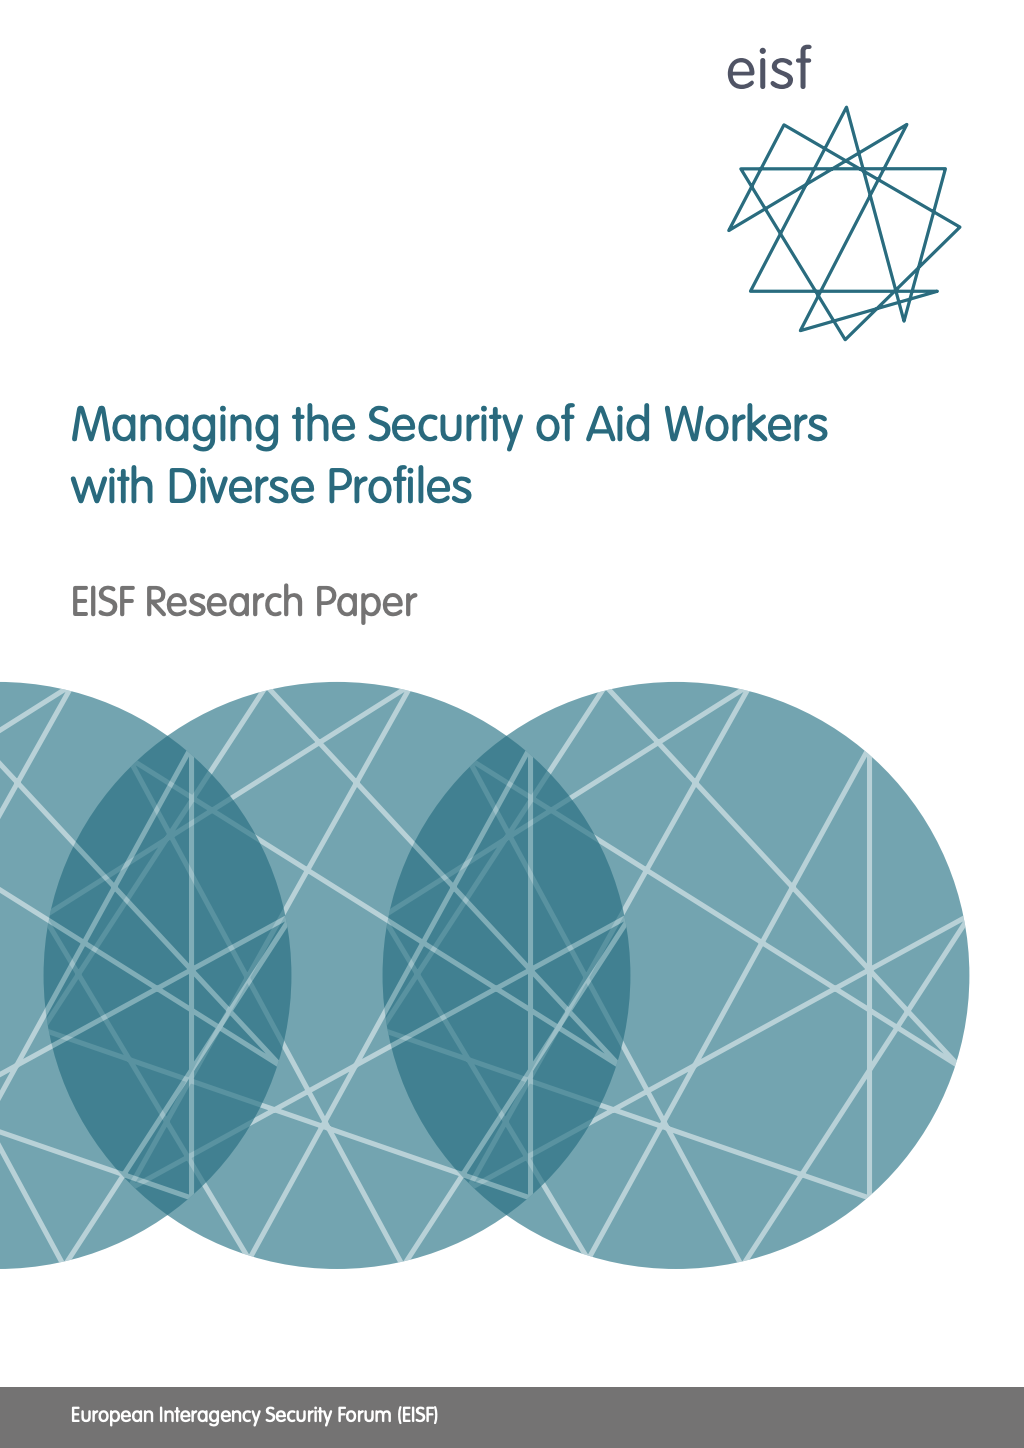 Managing the Security of Aid Workers with Diverse Profiles